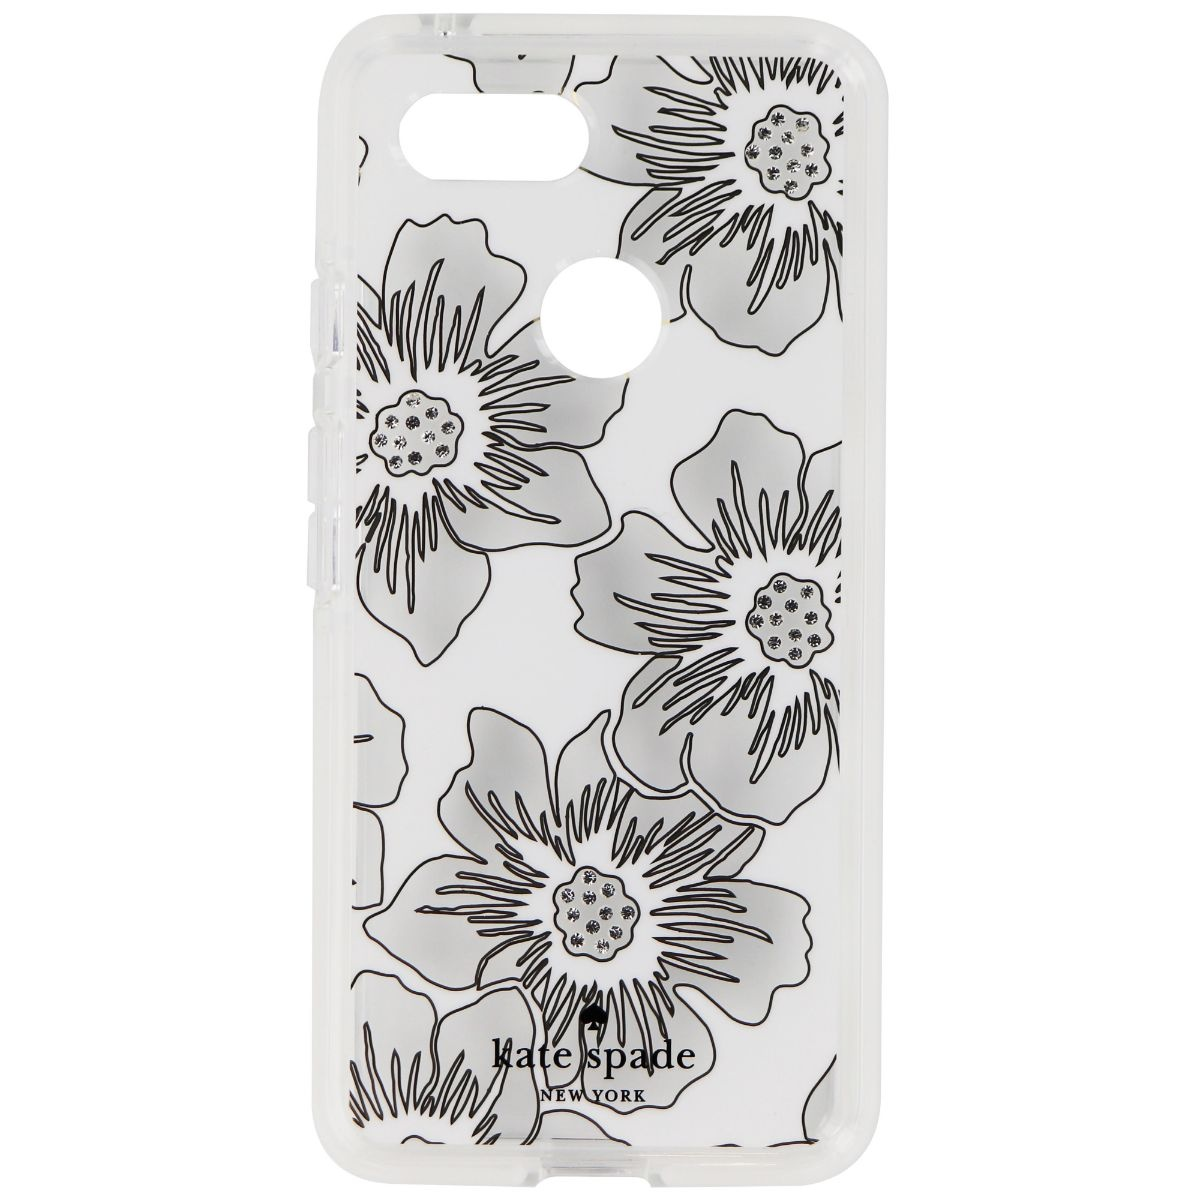 Kate Spade Defensive Hardshell Case for Google Pixel 3 - Reverse Hollyhock/Cream